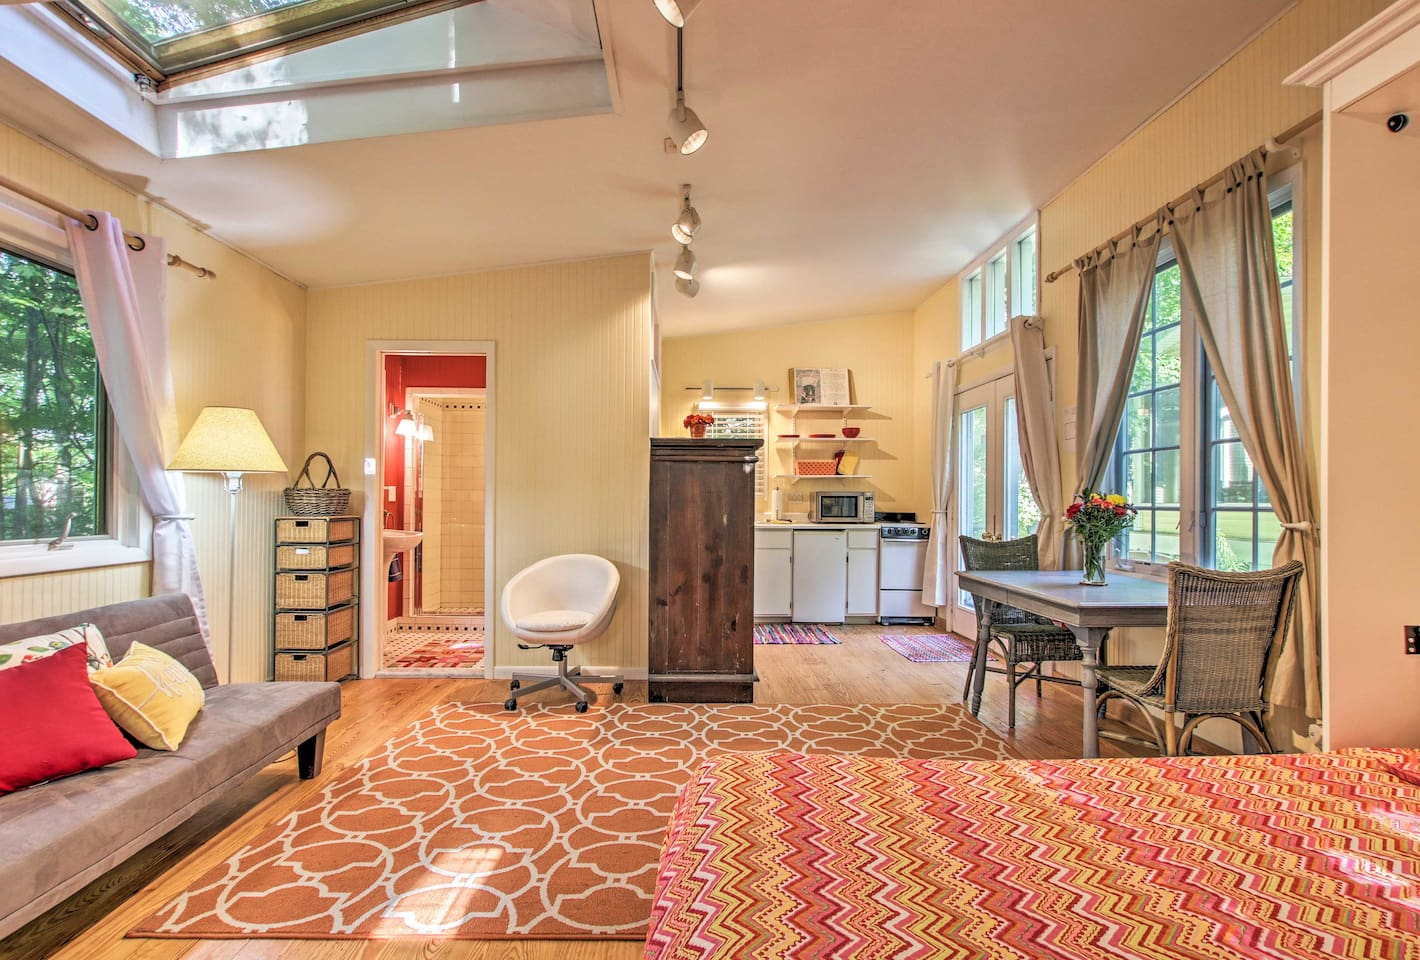 You're welcomed with vibrant decor, natural light, and all the comforts of home.